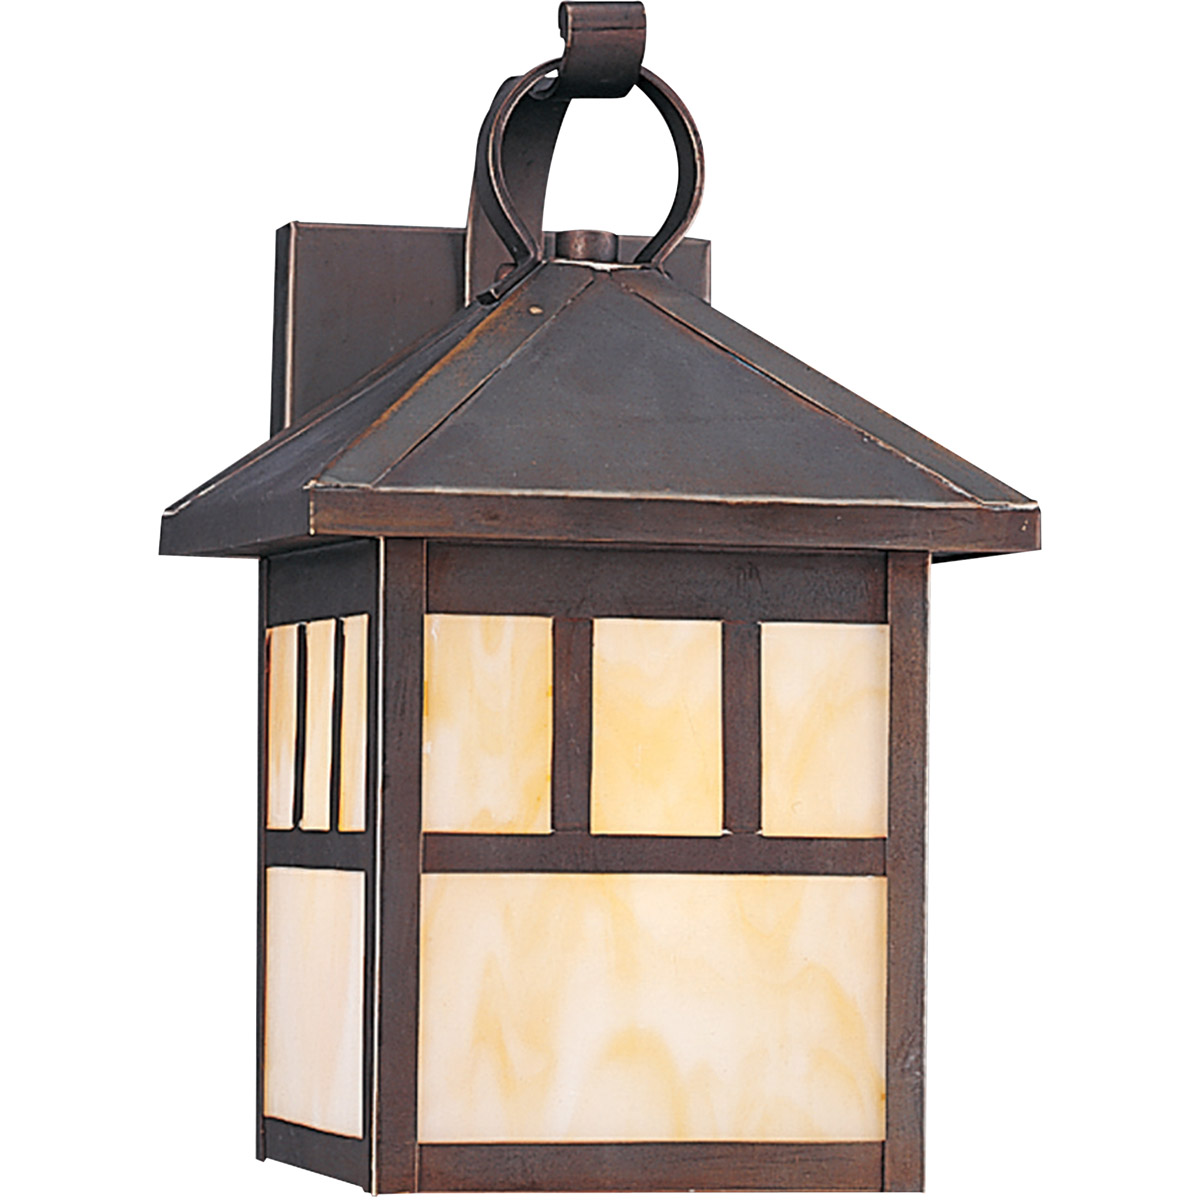 Sea Gull 8508-71 Prairie Statement 1 Light 11 inch Antique Bronze Outdoor Wall Lantern in Not Darksky Compliant photo